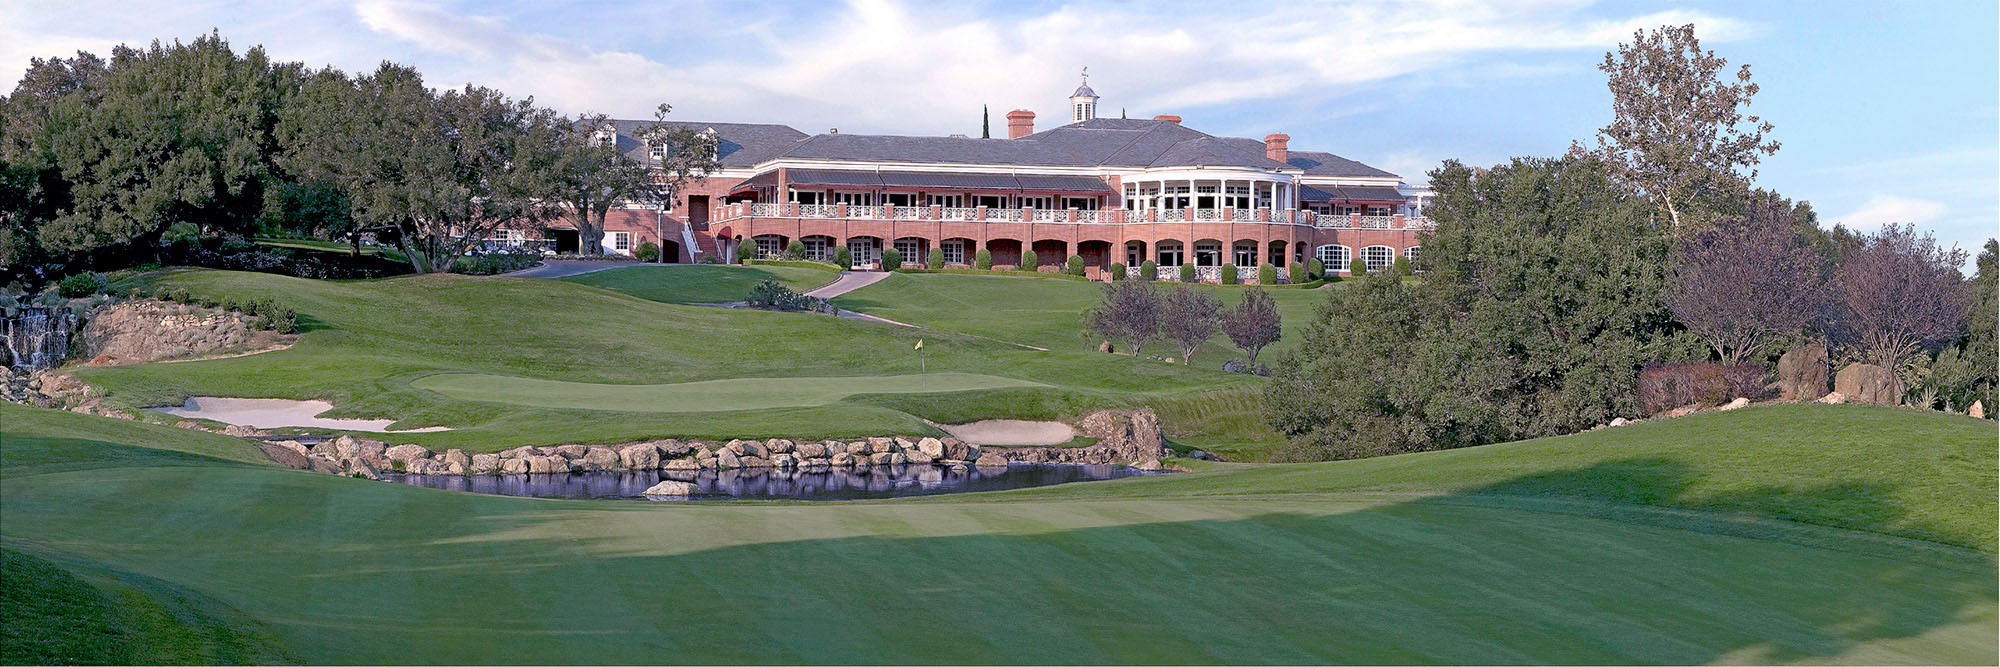 Golf Course Image - Sherwood Country Club No. 18